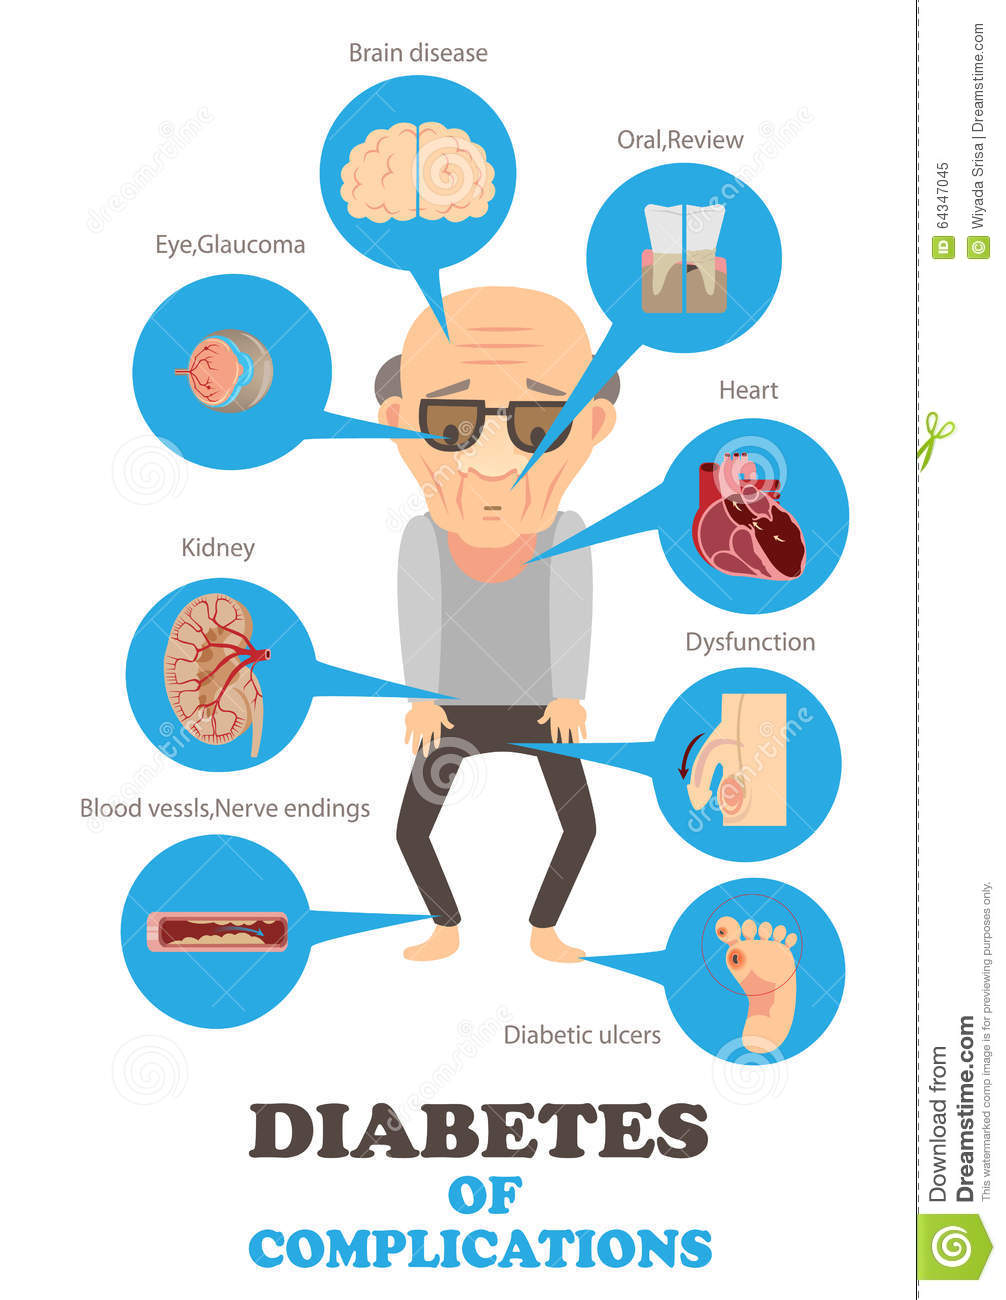 Diabetes Note: These 7 staple foods will increase blood sugar quickly, so don't eat it alone!